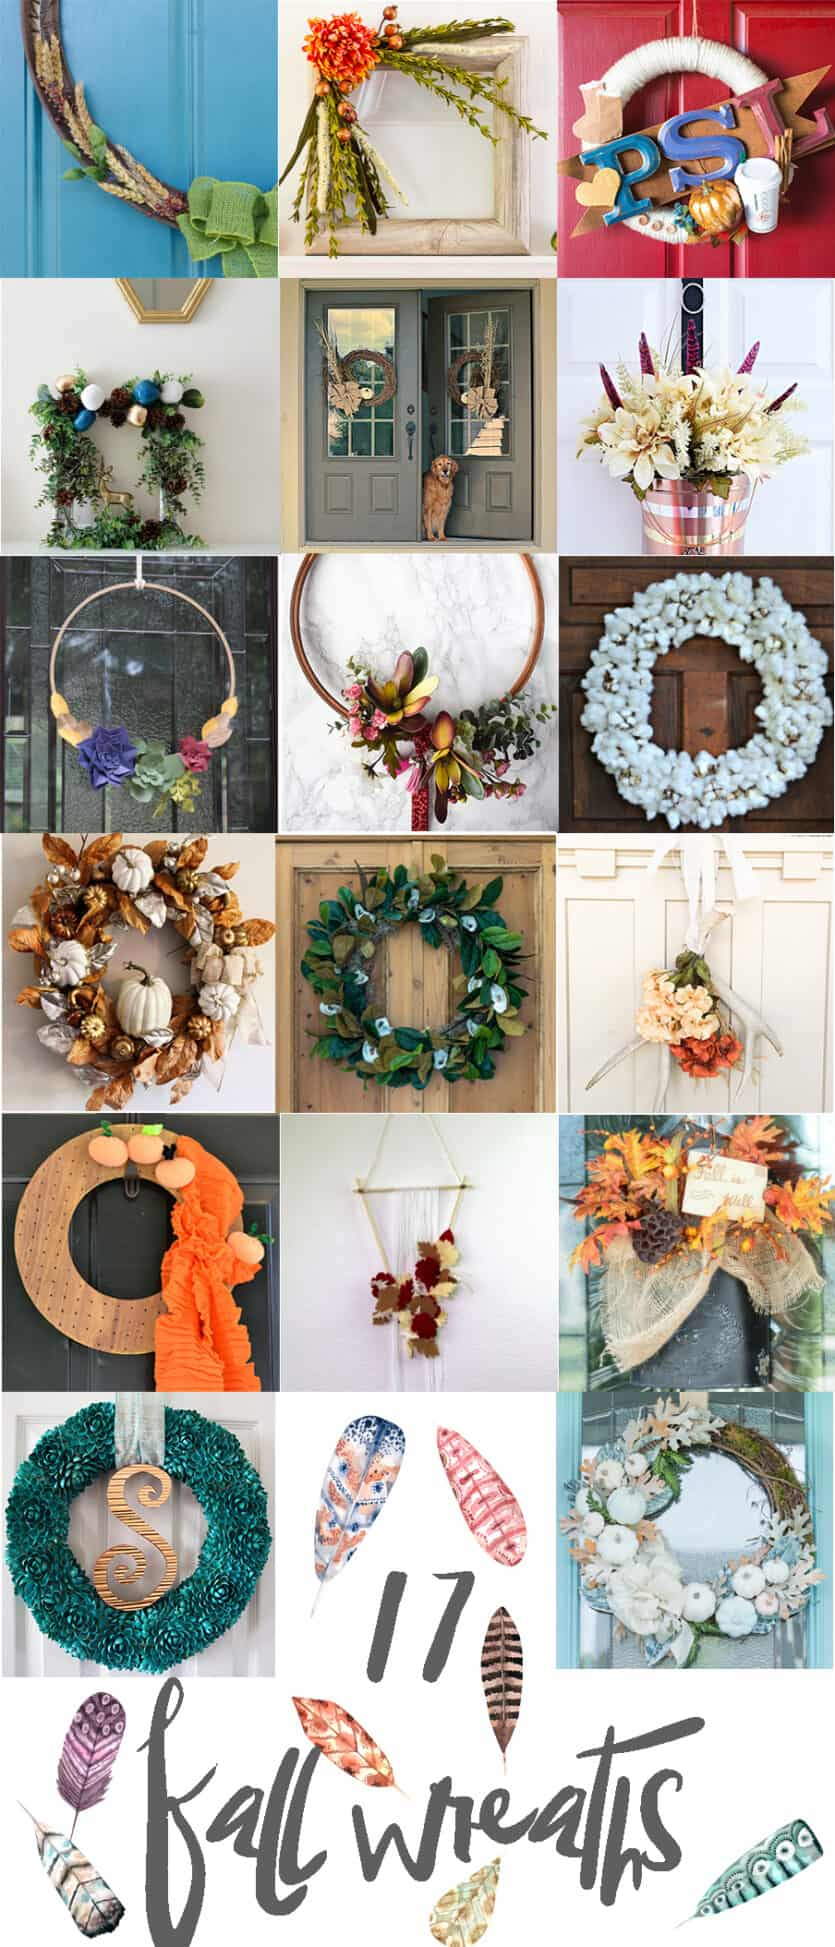 17 diy fall wreaths